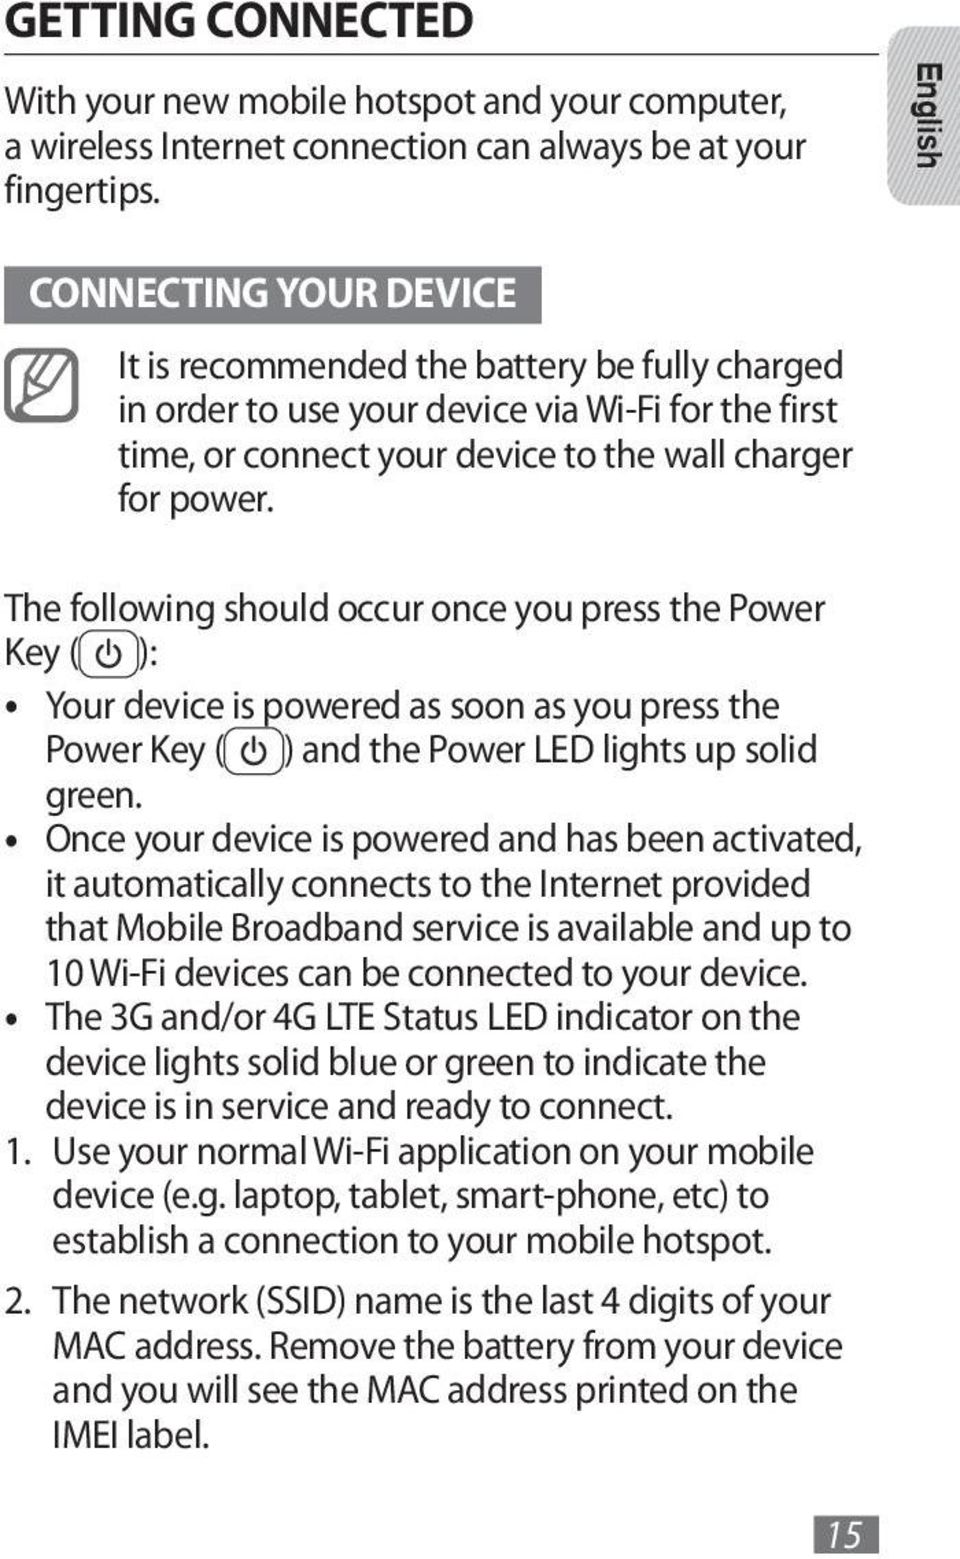 The following should occur once you press the Power Key ( ): Your device is powered as soon as you press the Power Key ( ) and the Power LED lights up solid green.